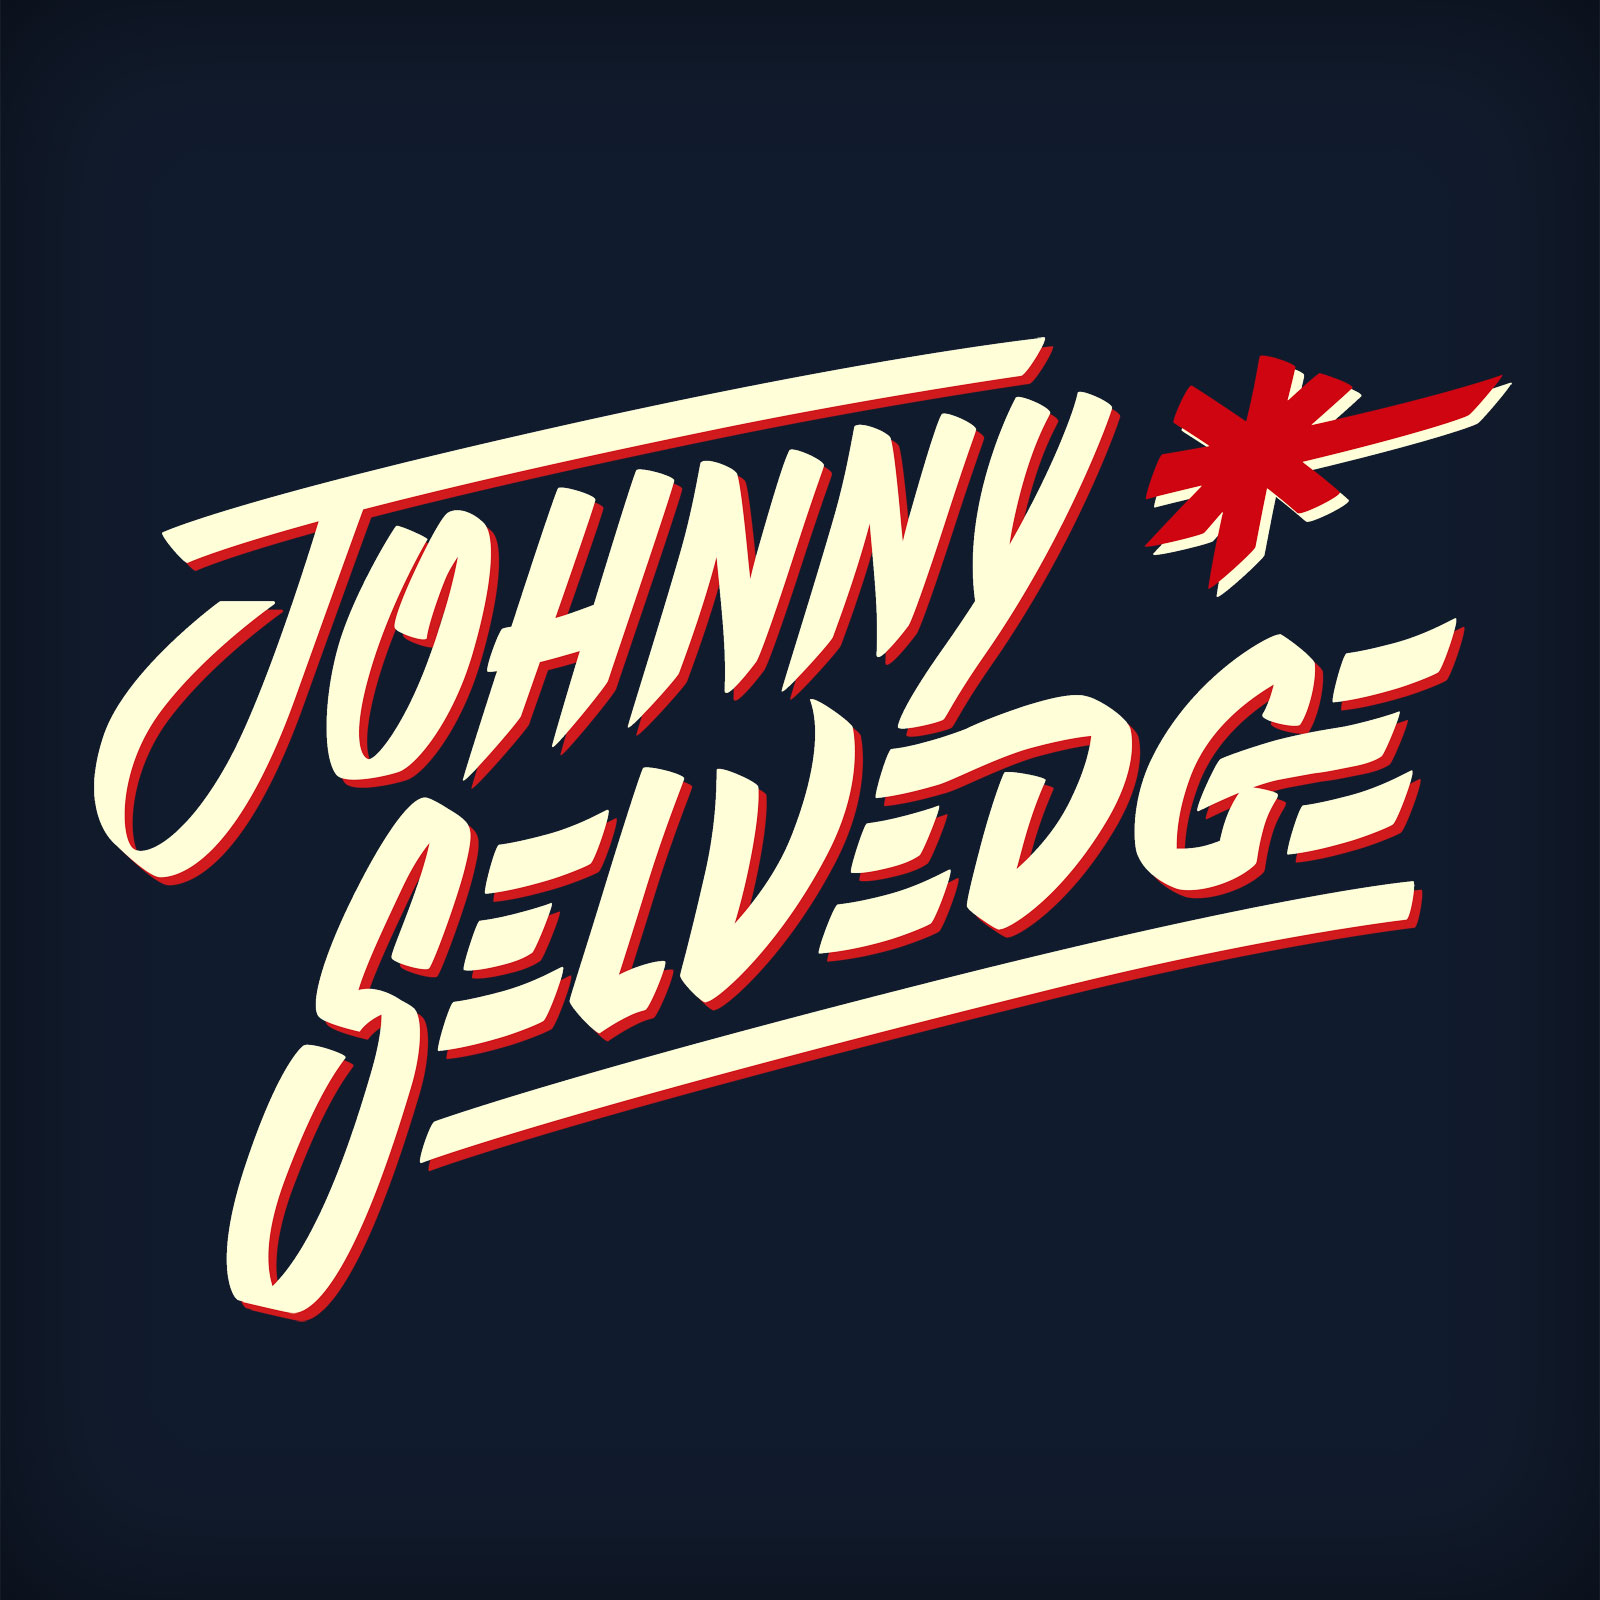 Logo Johnny Selvedge